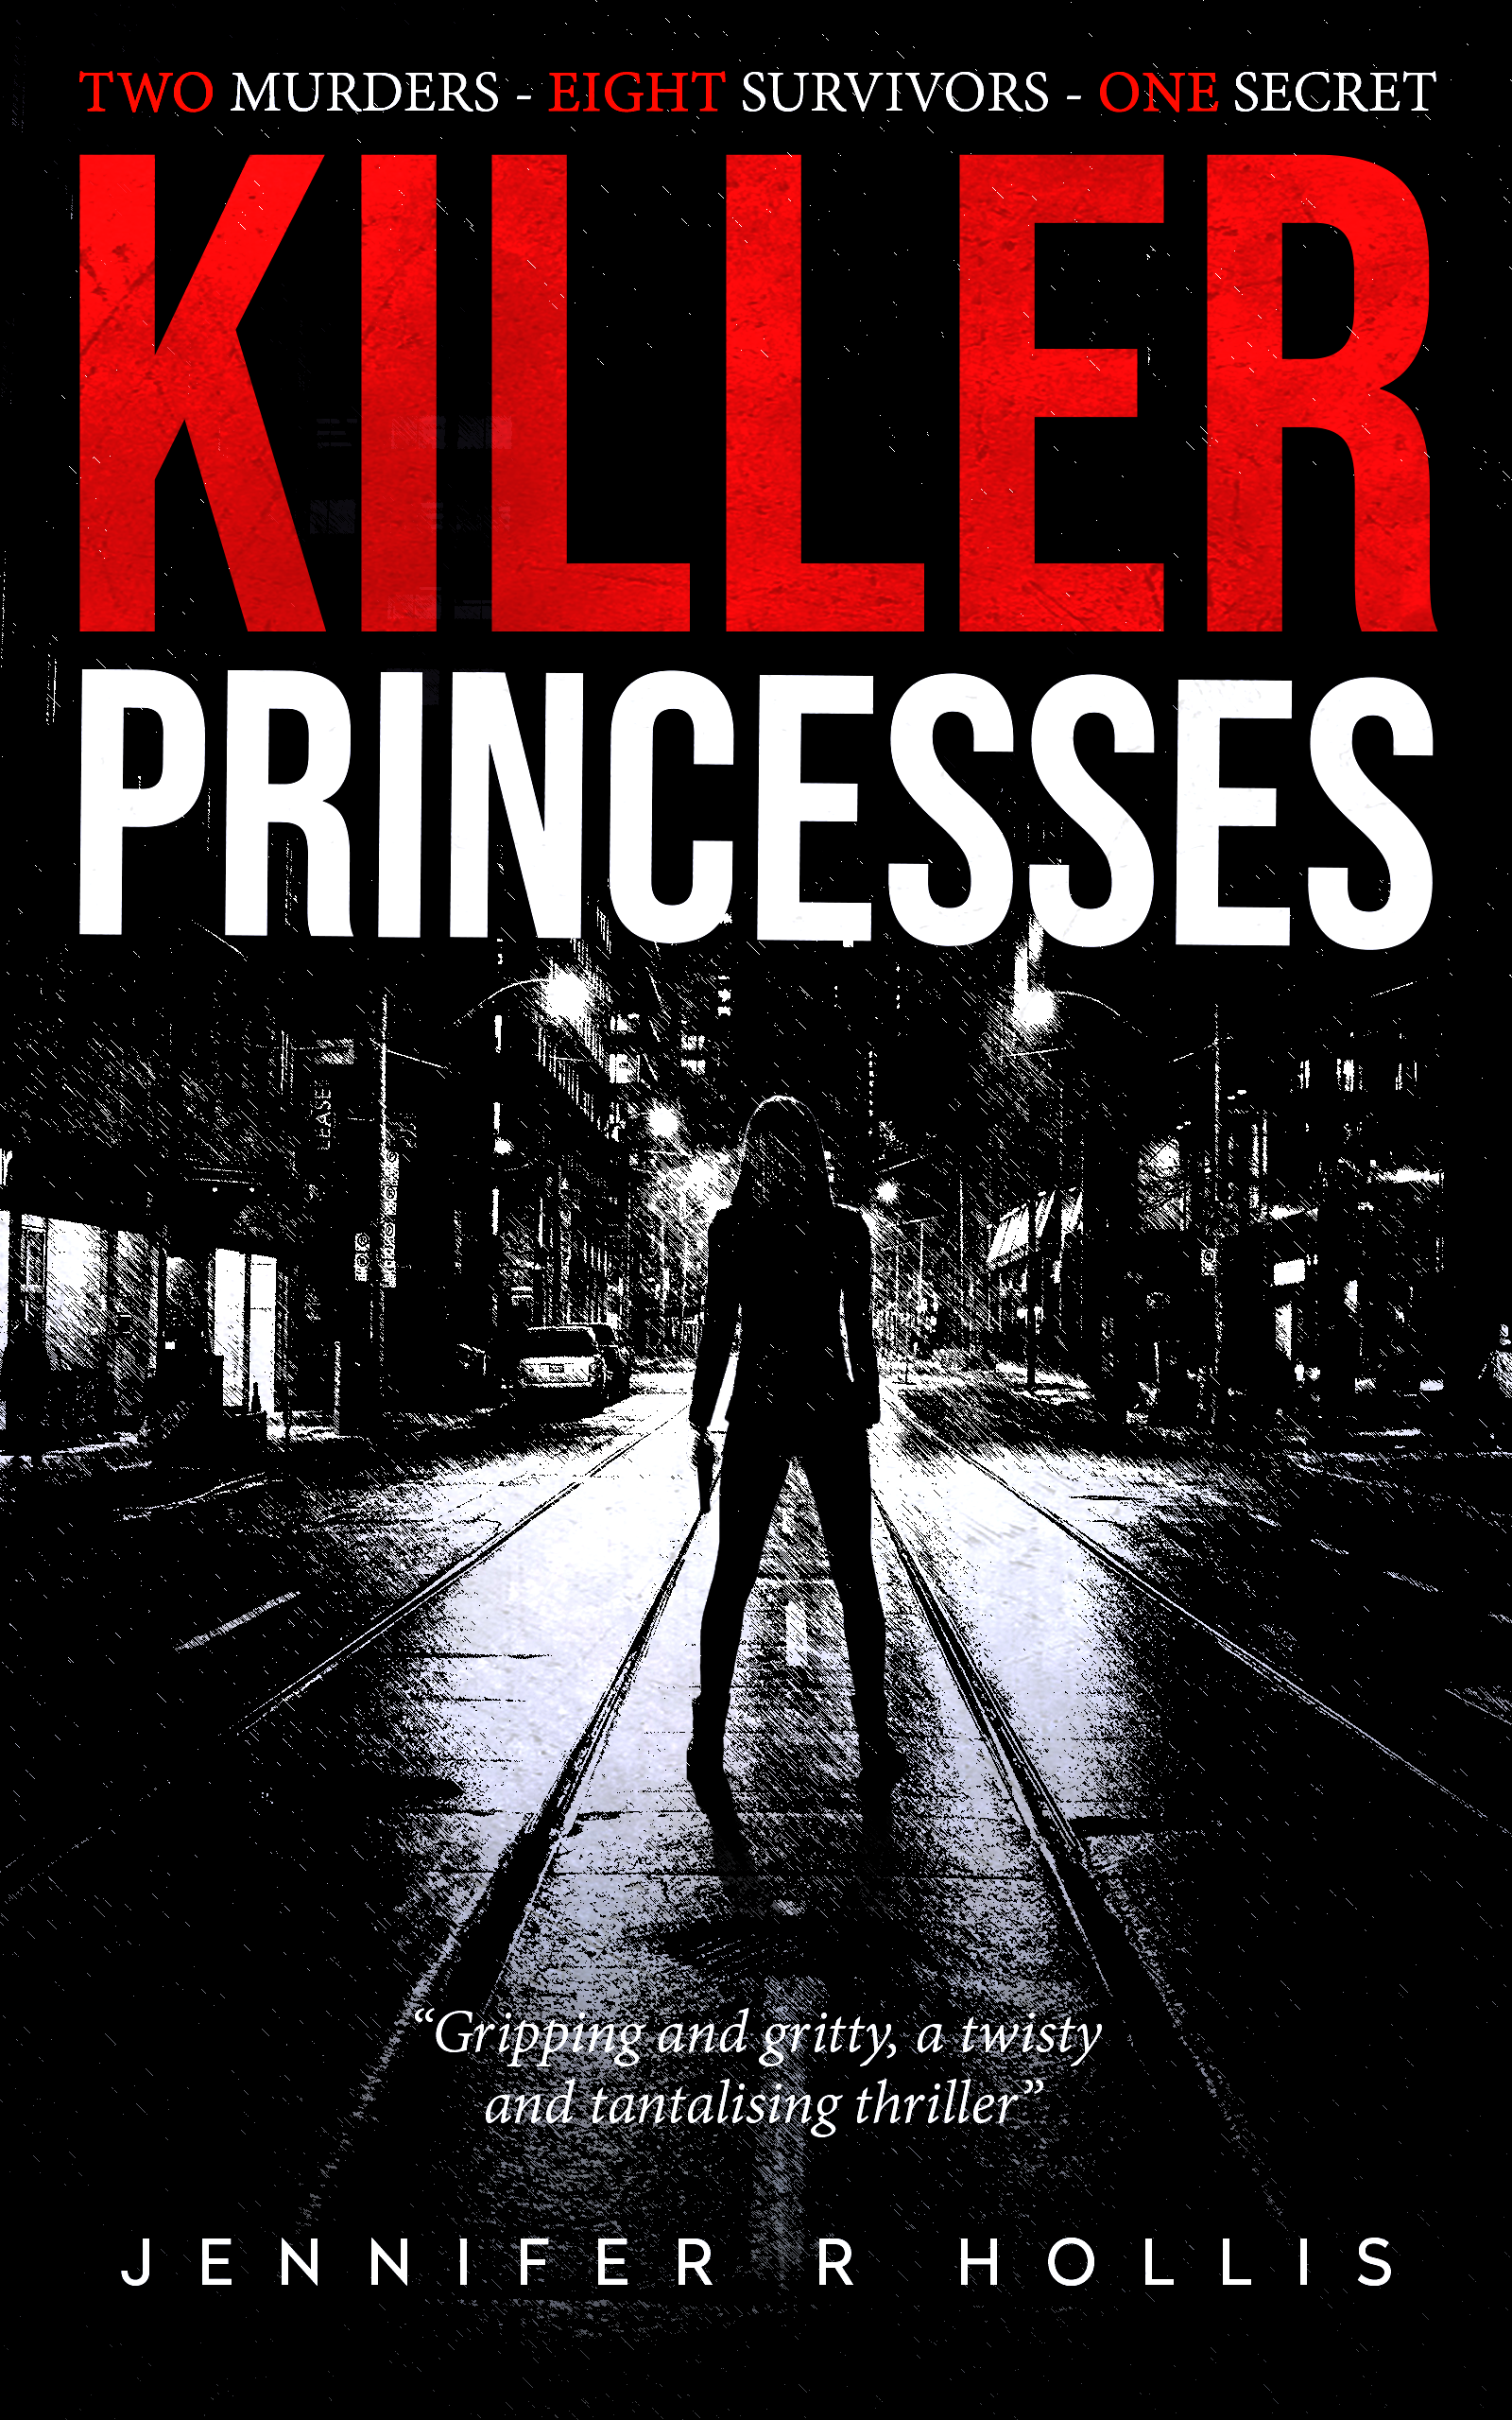 Female-led crime novel laced with dark humour - ebook cover